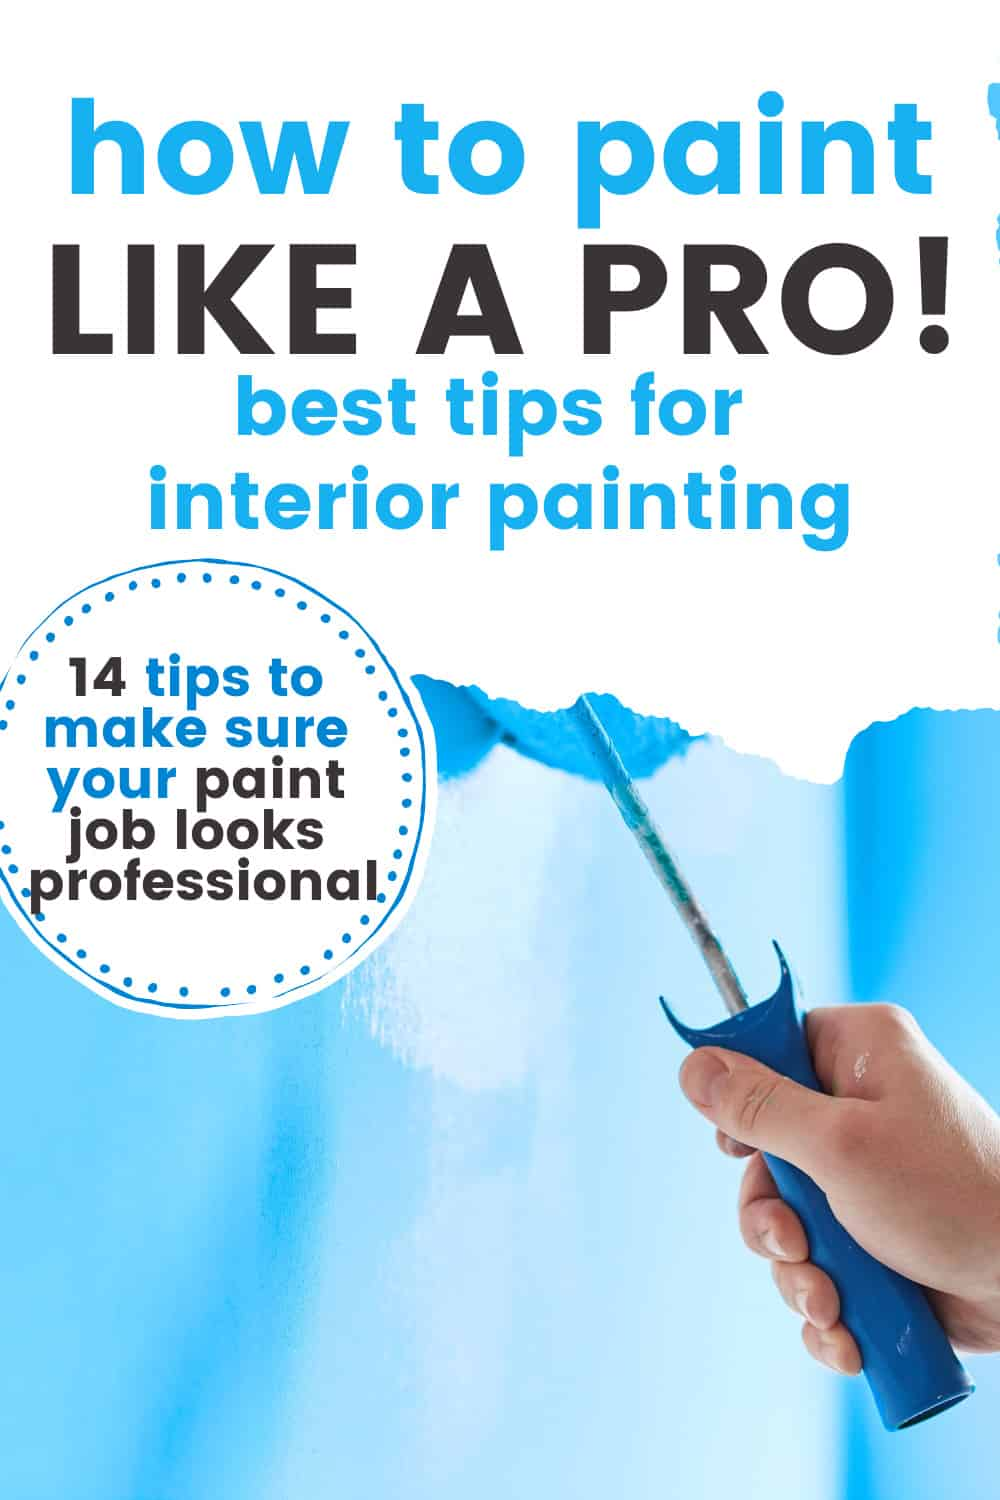 Painting Walls for Beginners: DIY Interior Wall Painting Techniques to Paint Like a Pro